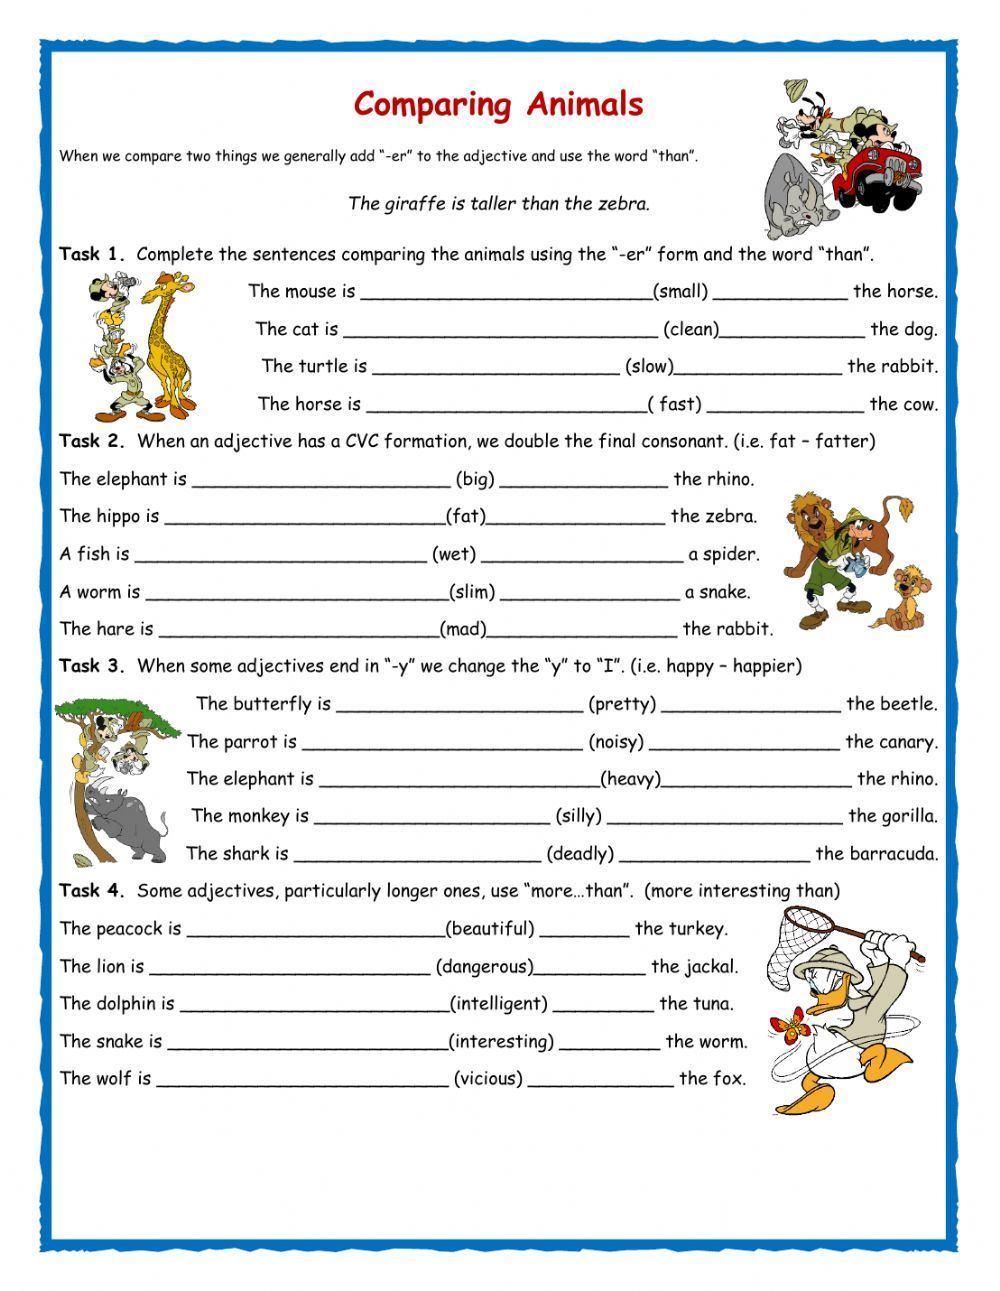 Comparatives interactive and downloadable worksheet. Check